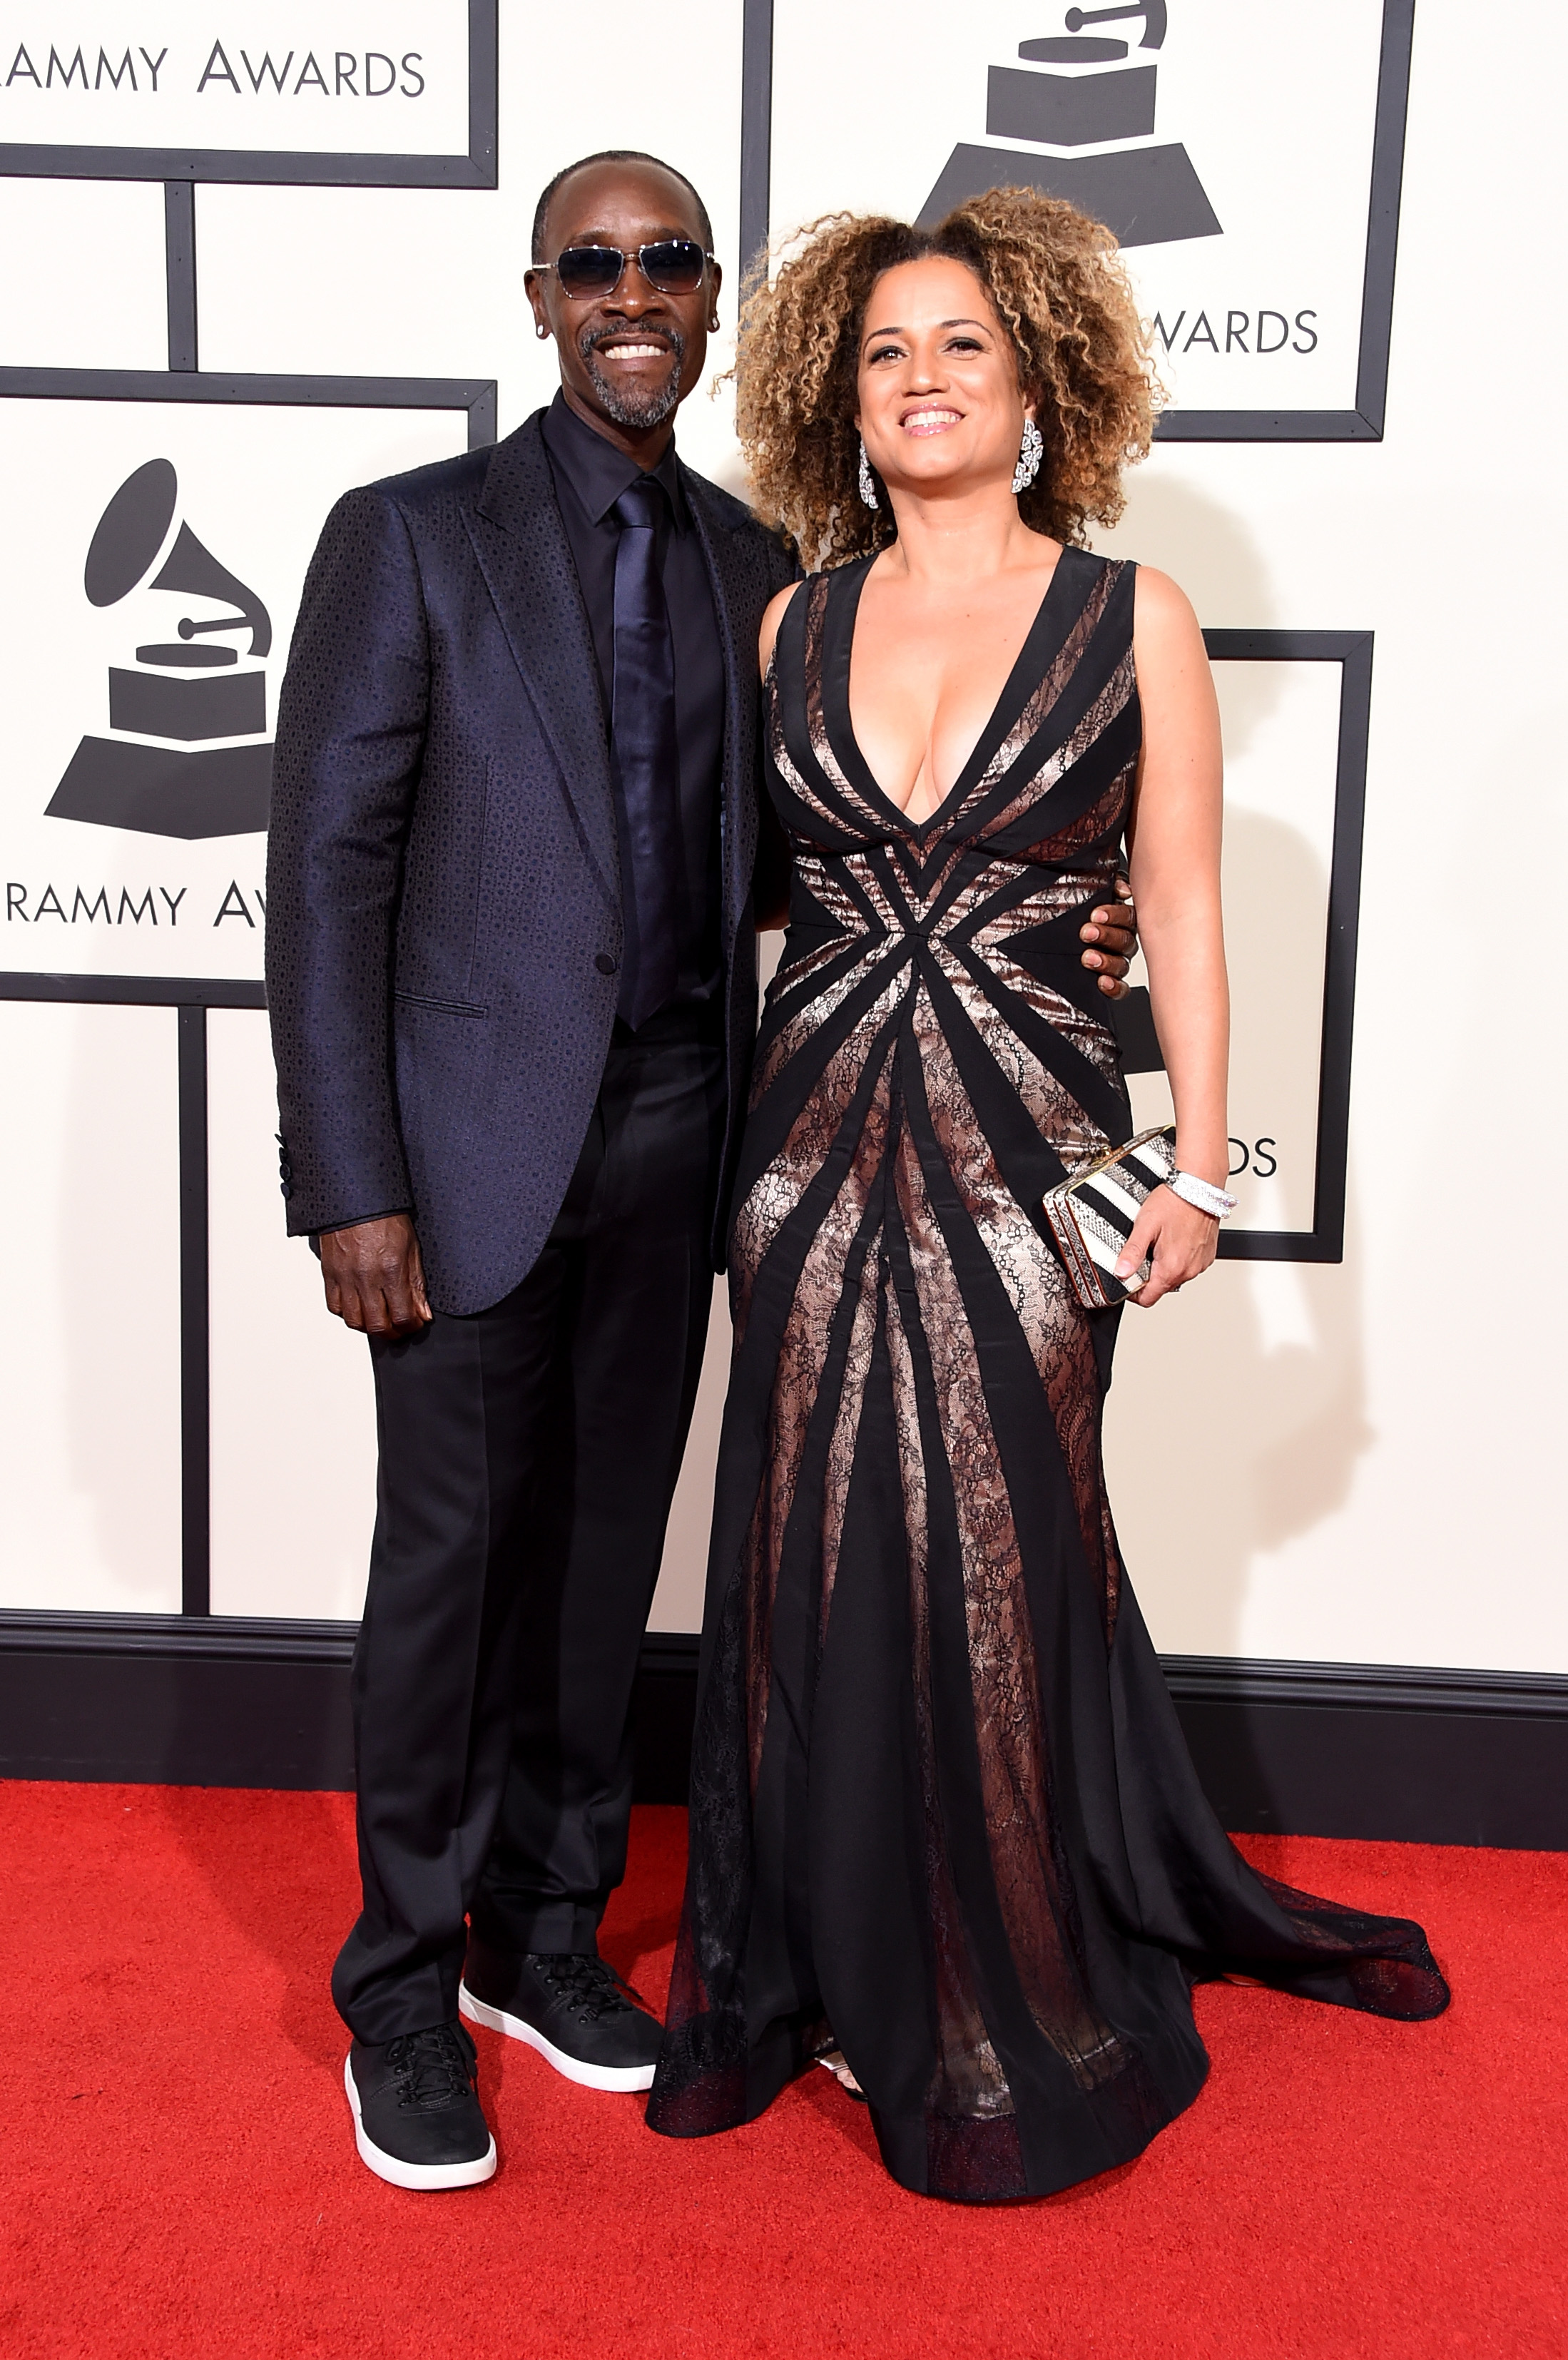 Don Cheadle, left, and Bridgid Coulter, right, attend the 58th GRAMMY Awards at Staples Center on Feb. 15, 2016 in Los Angeles.